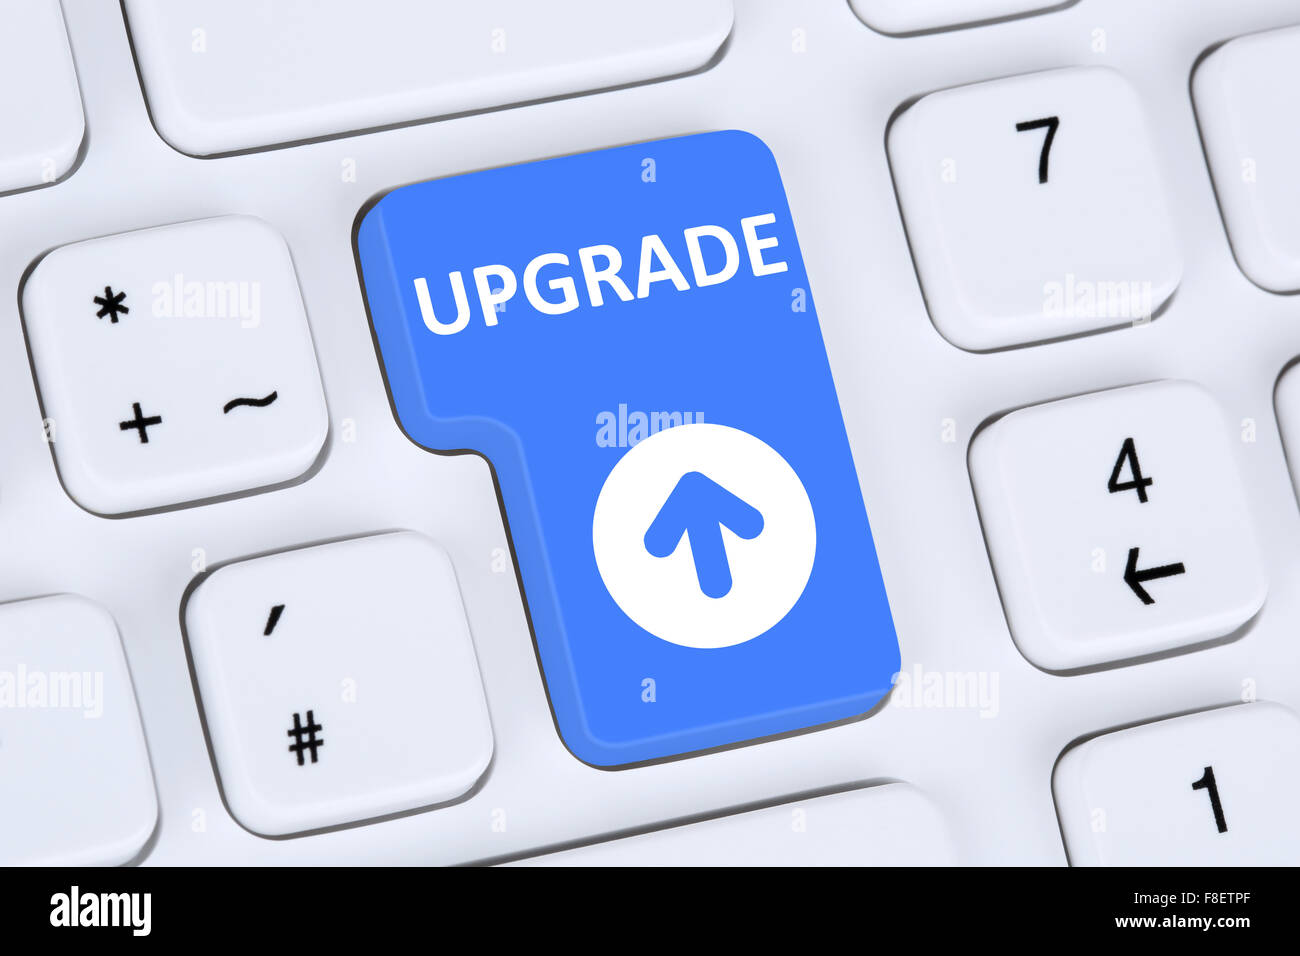 Upgrade Upgrading Software Program Computer Icon Keyboard